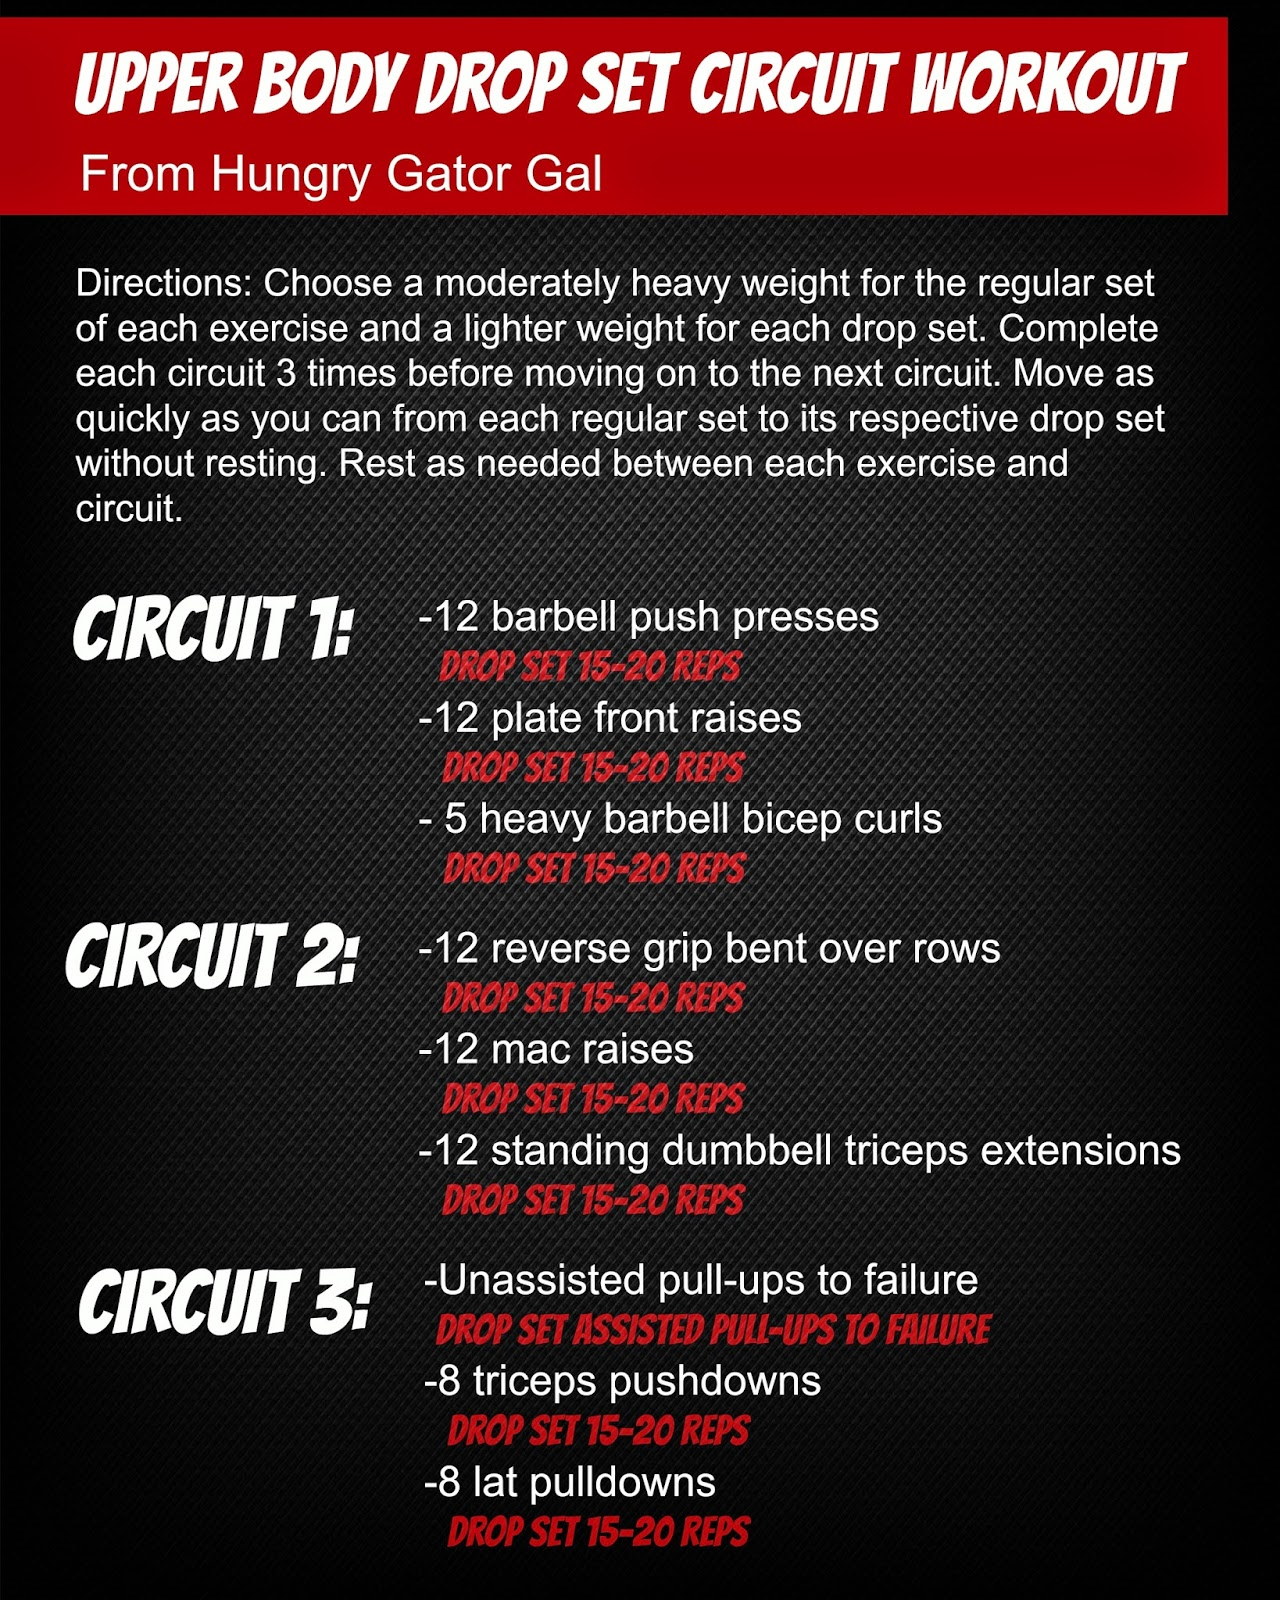 Upper Body Drop Set Circuit Workout from hungrygatorgal.com